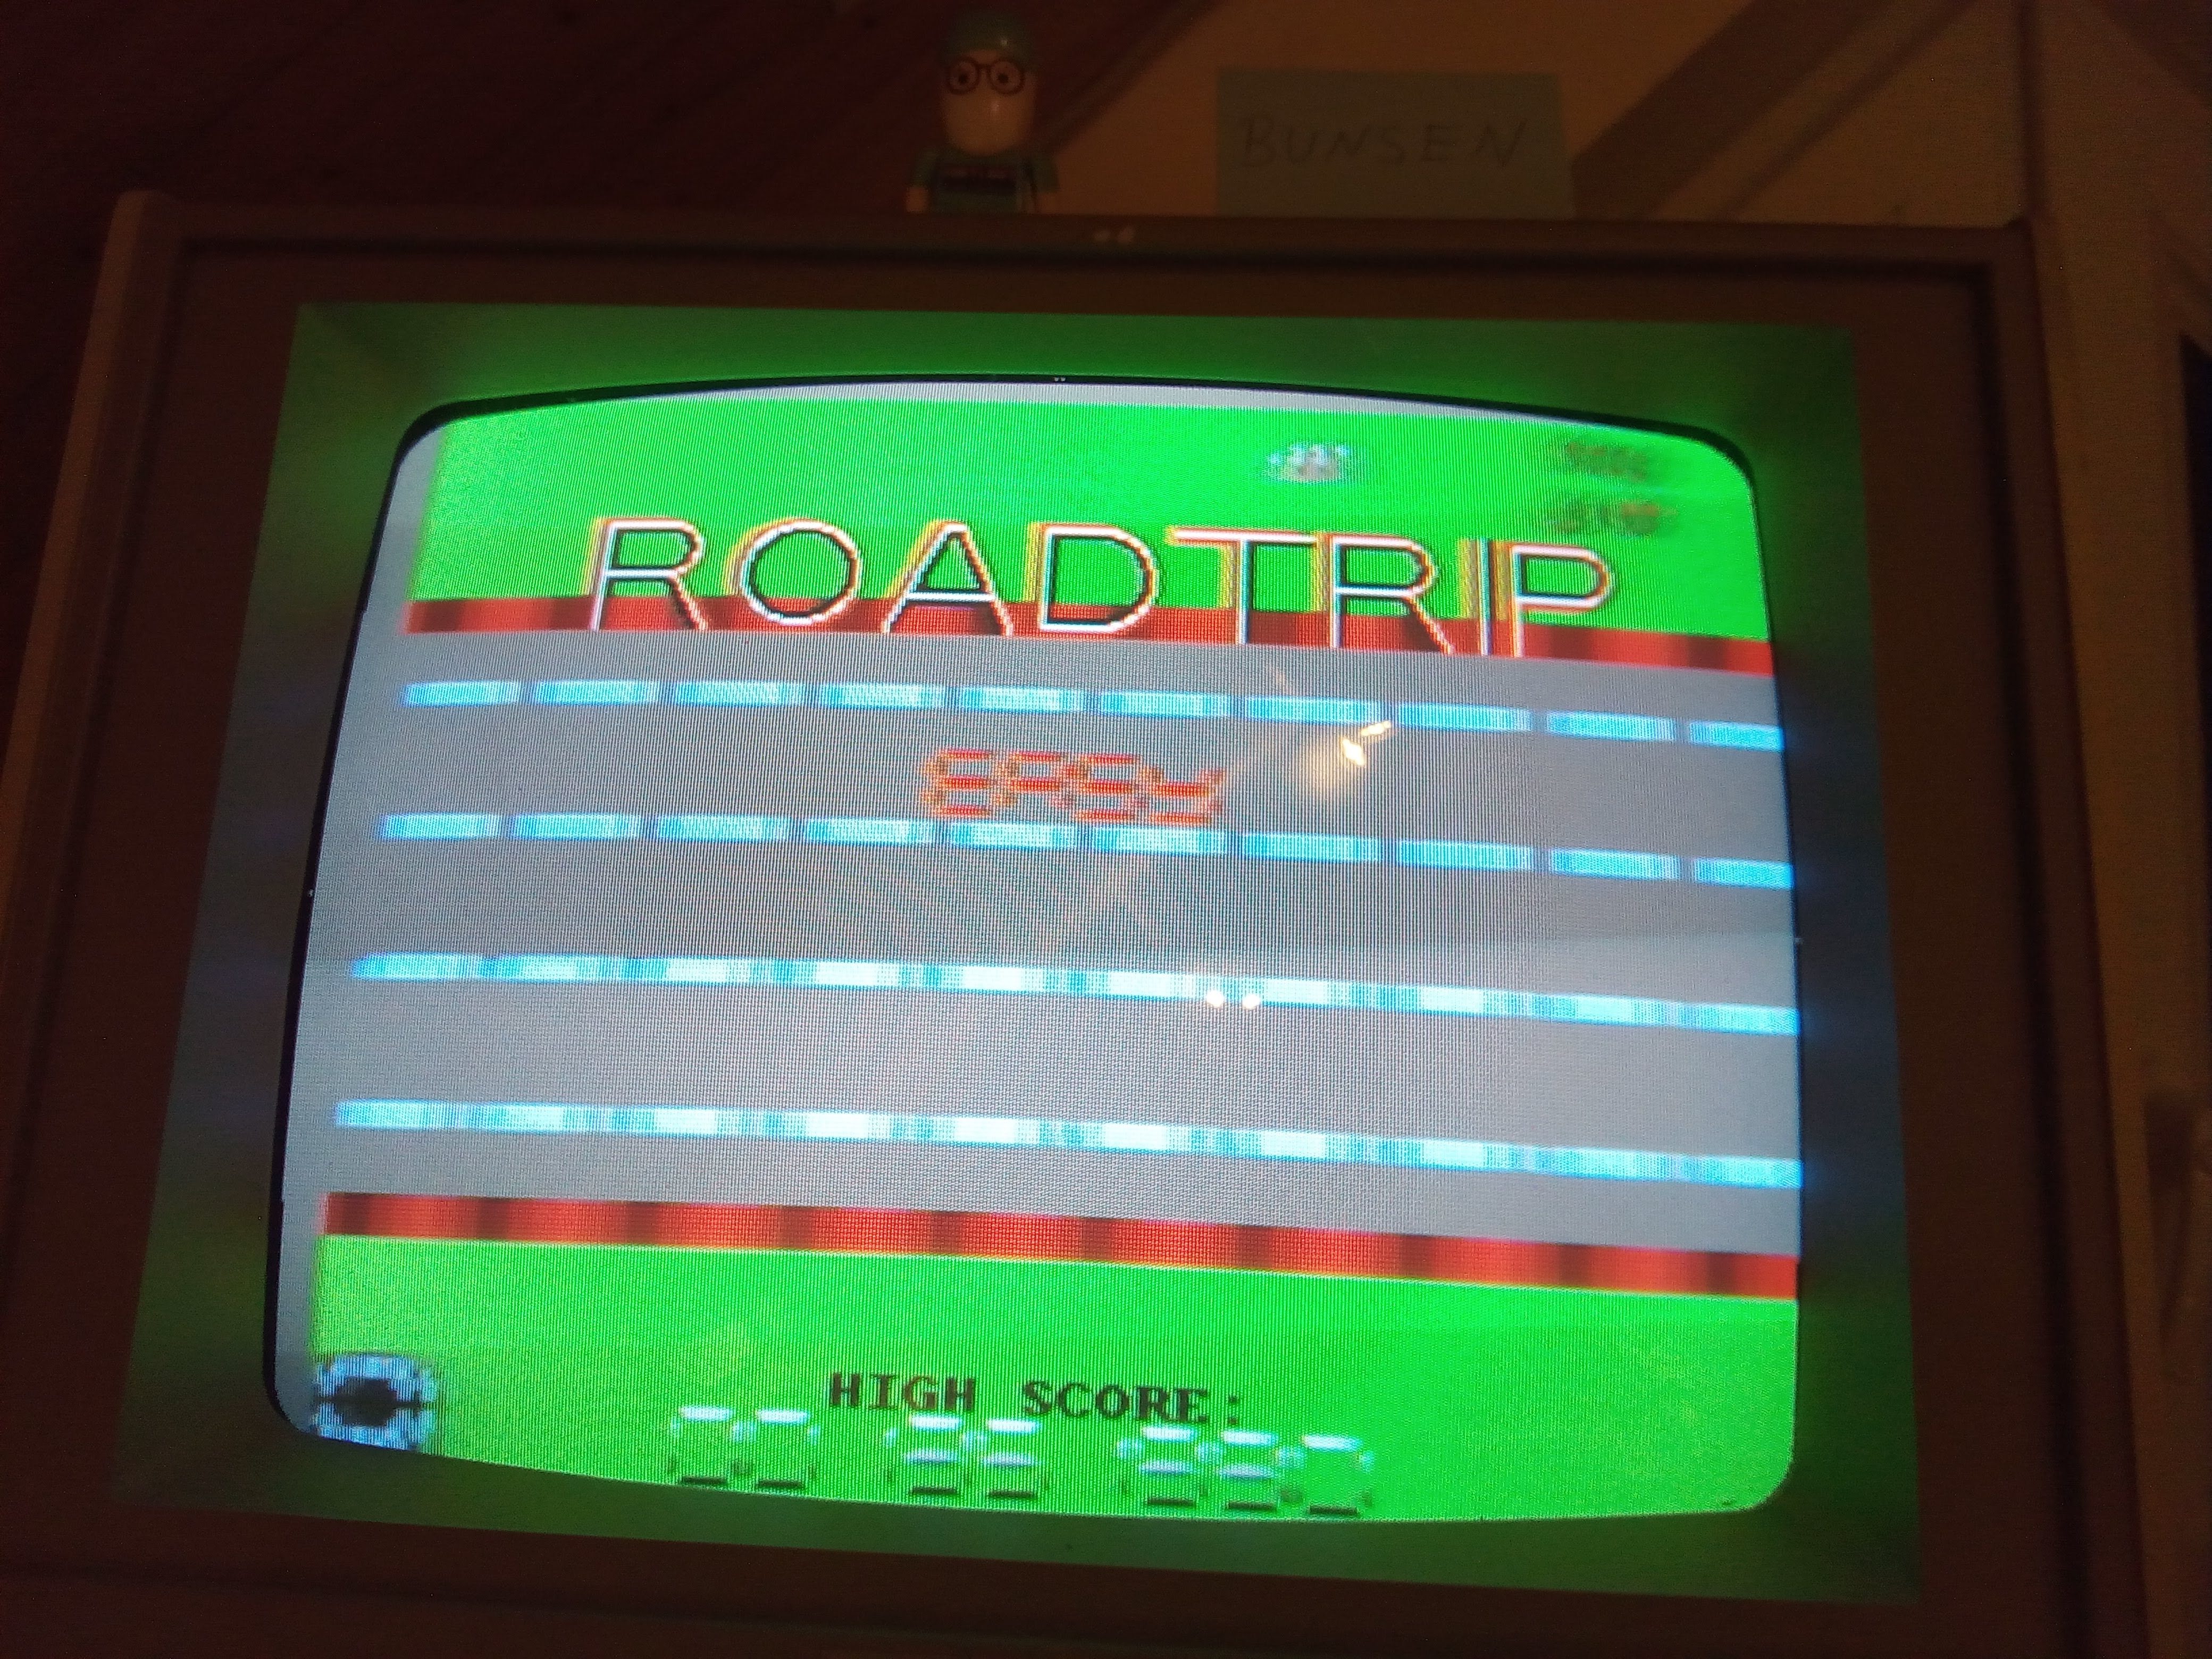 Roadtrip [Difficulty: Easy] 1,351,990 points